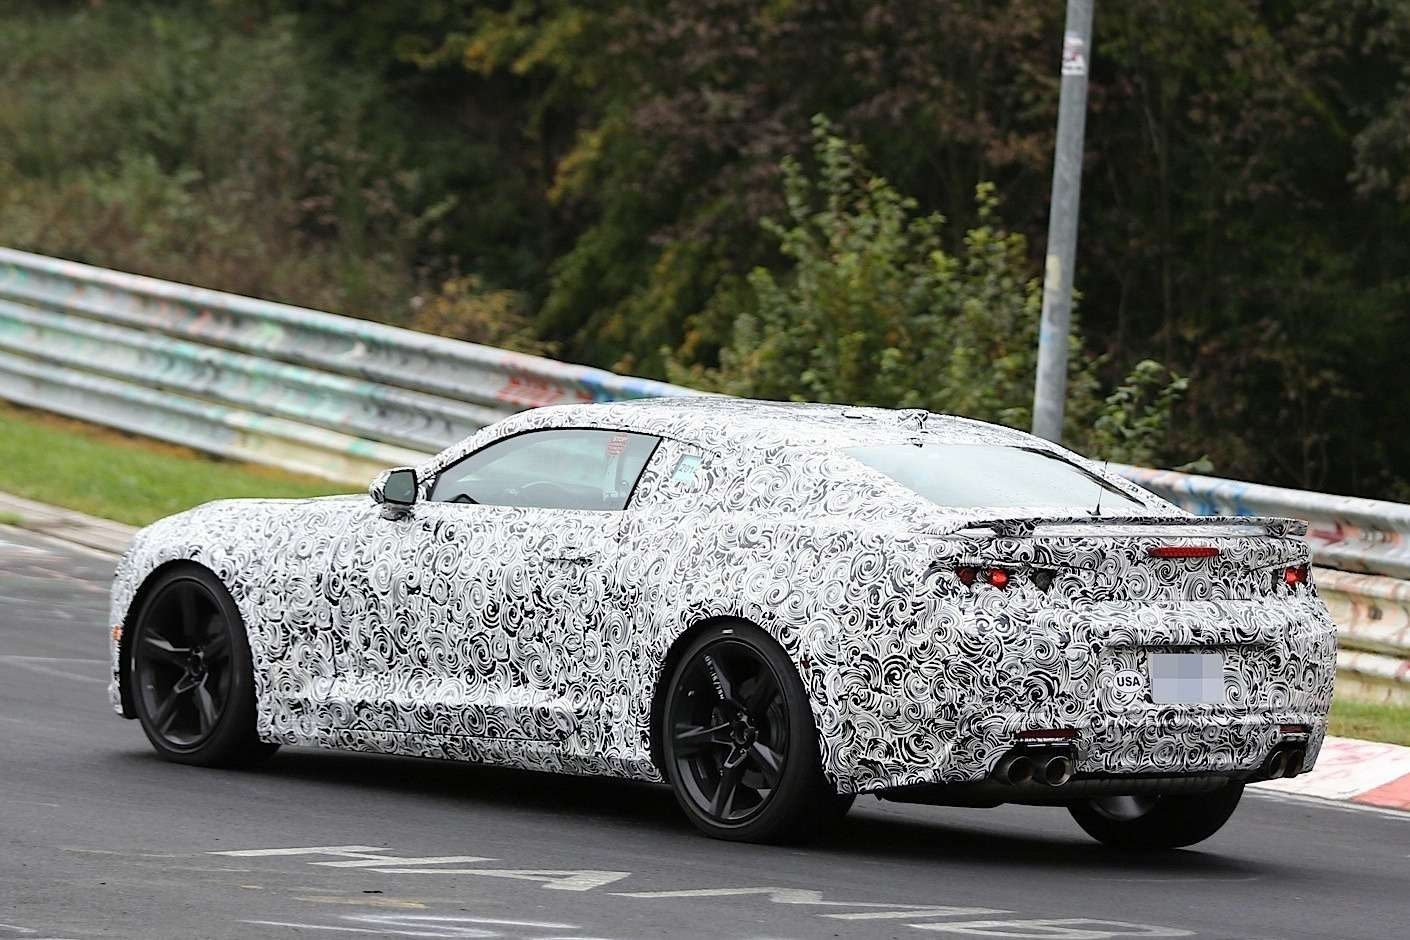 2016-chevrolet-camaro-exposed-its-got-a-butch-front-fascia-design-video-photo-gallery_6